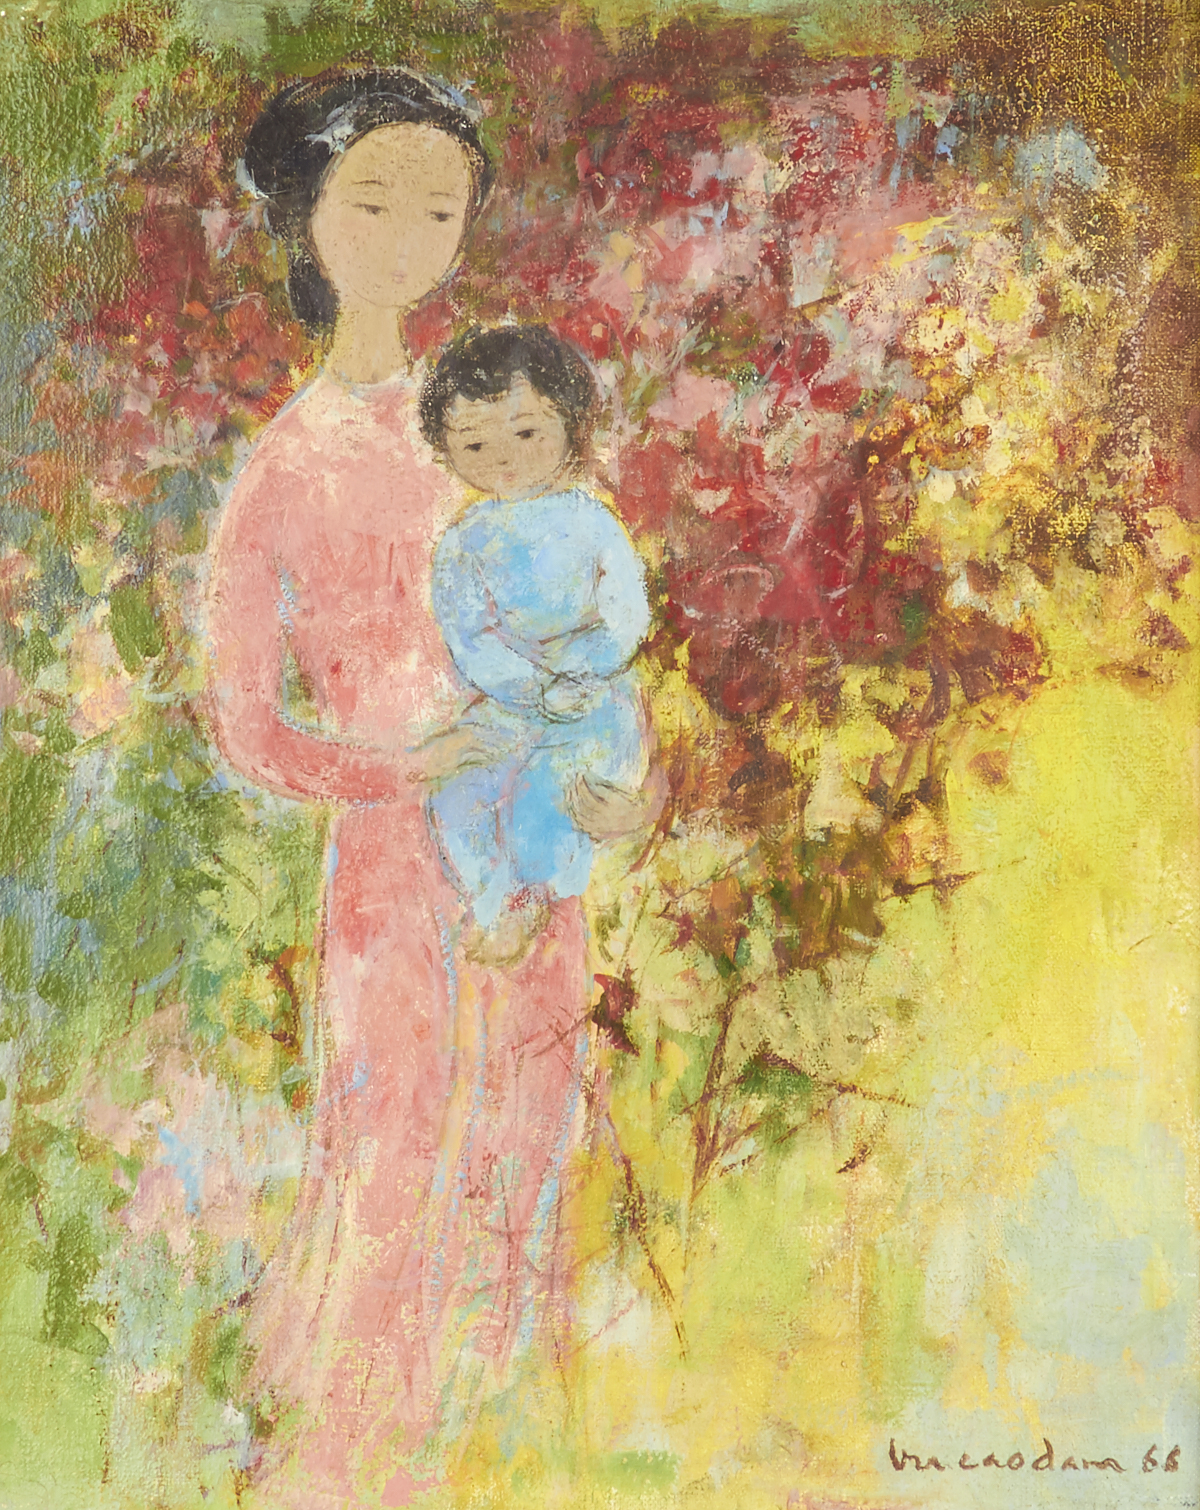 Vu Cao Dam Painting sold for $40,000